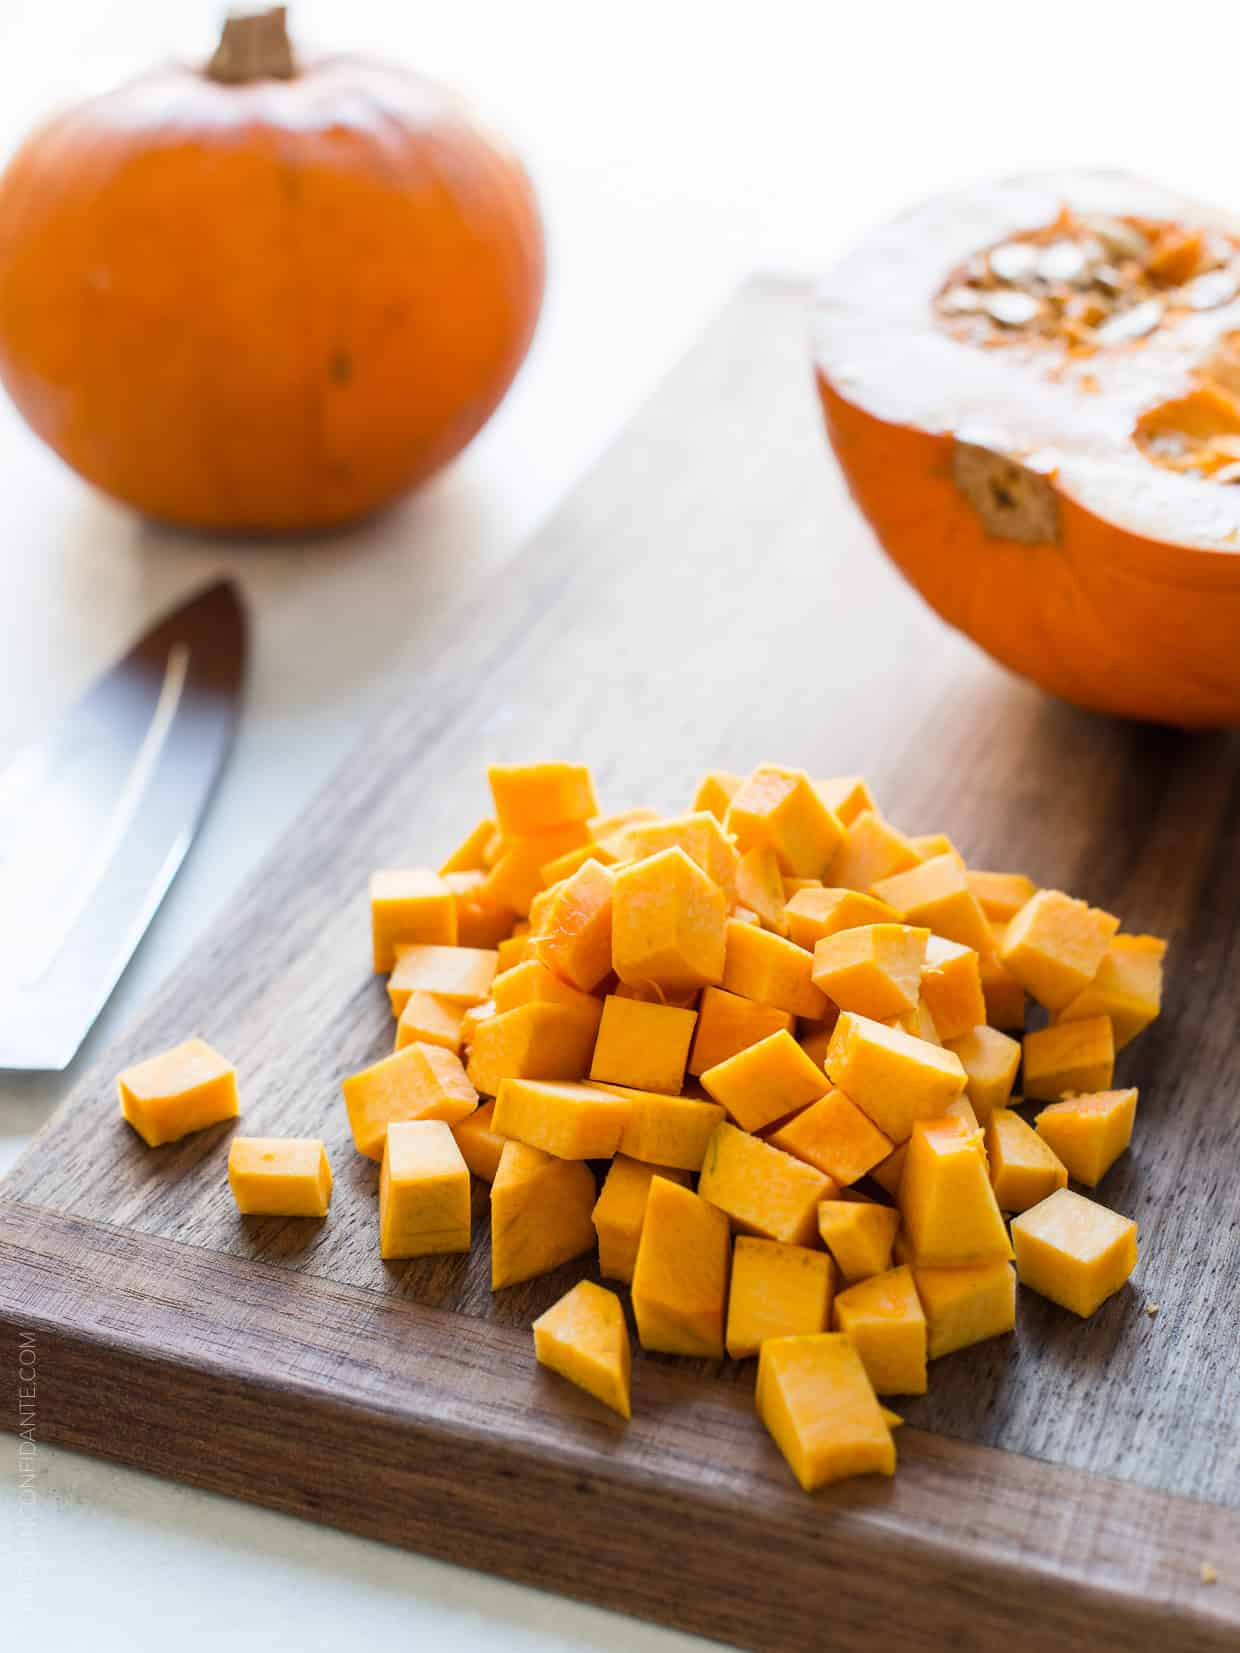 Diced pumpkin chunks on a wooden cutting board ready to be used in Turkey Pumpkin Pot Pie.